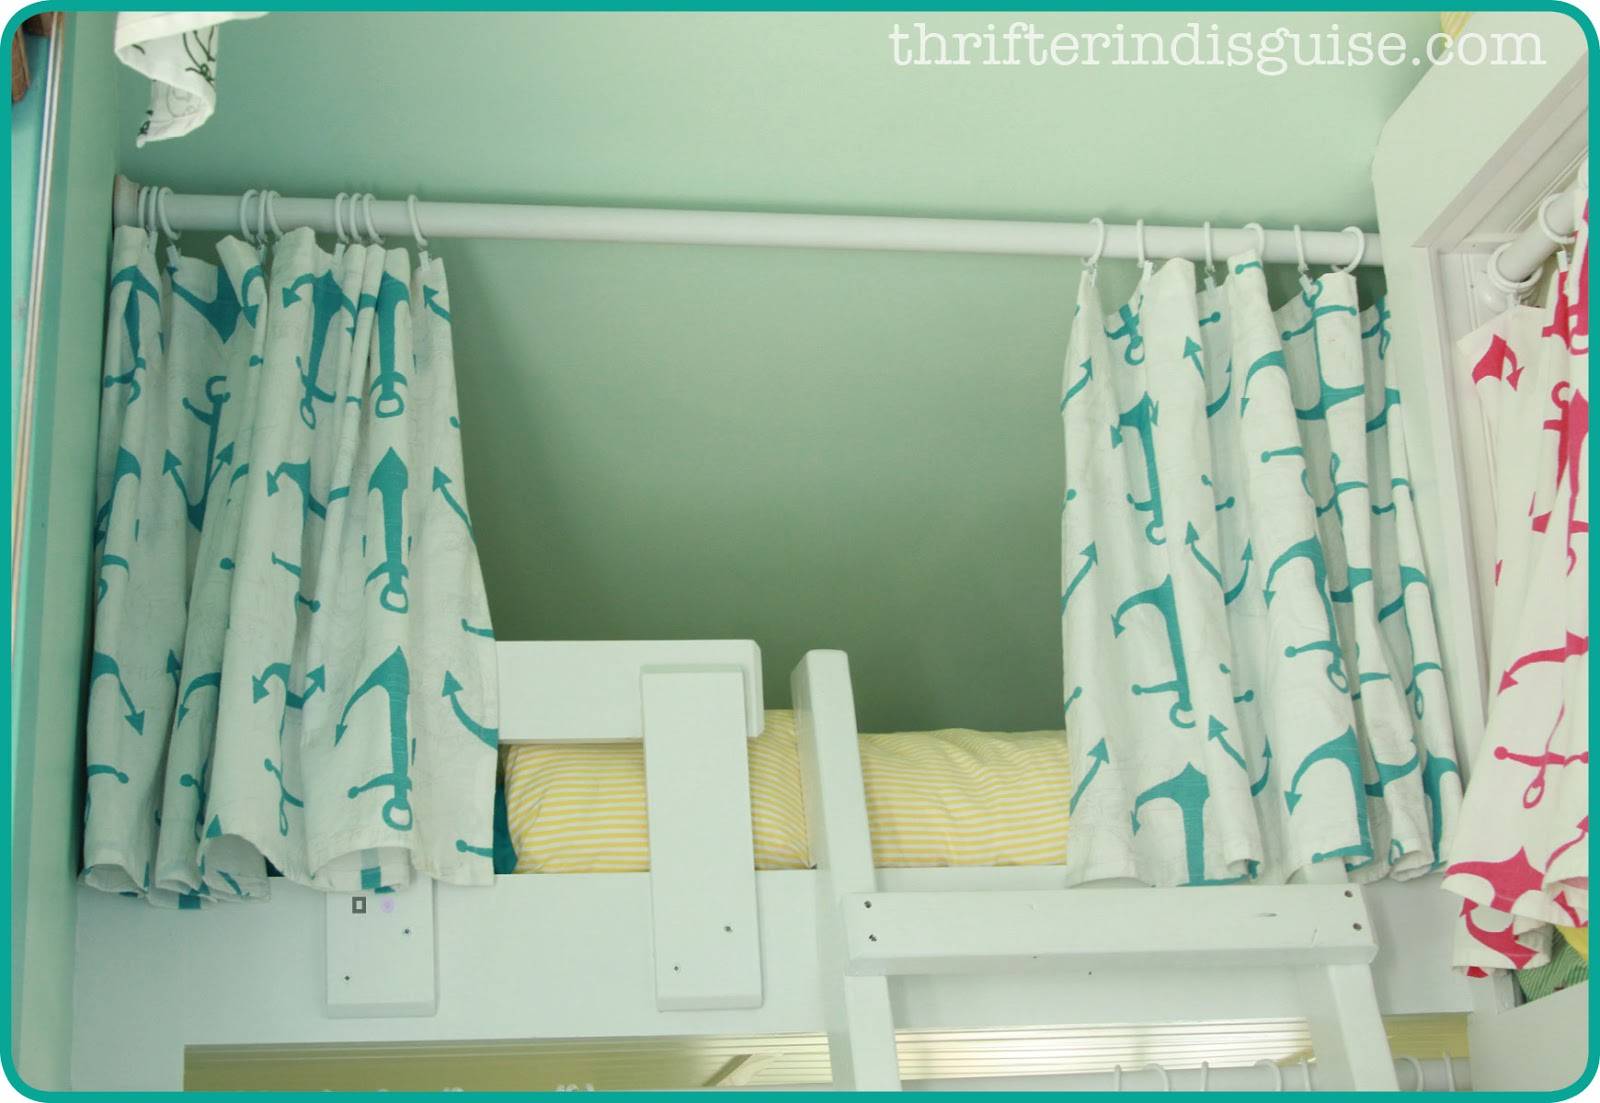 Bed Divider Design Ideas with Bunk Bed Curtains: Twin Bed Canopy Tent | Bunk Bed Curtains | Bunk Bed Curtains